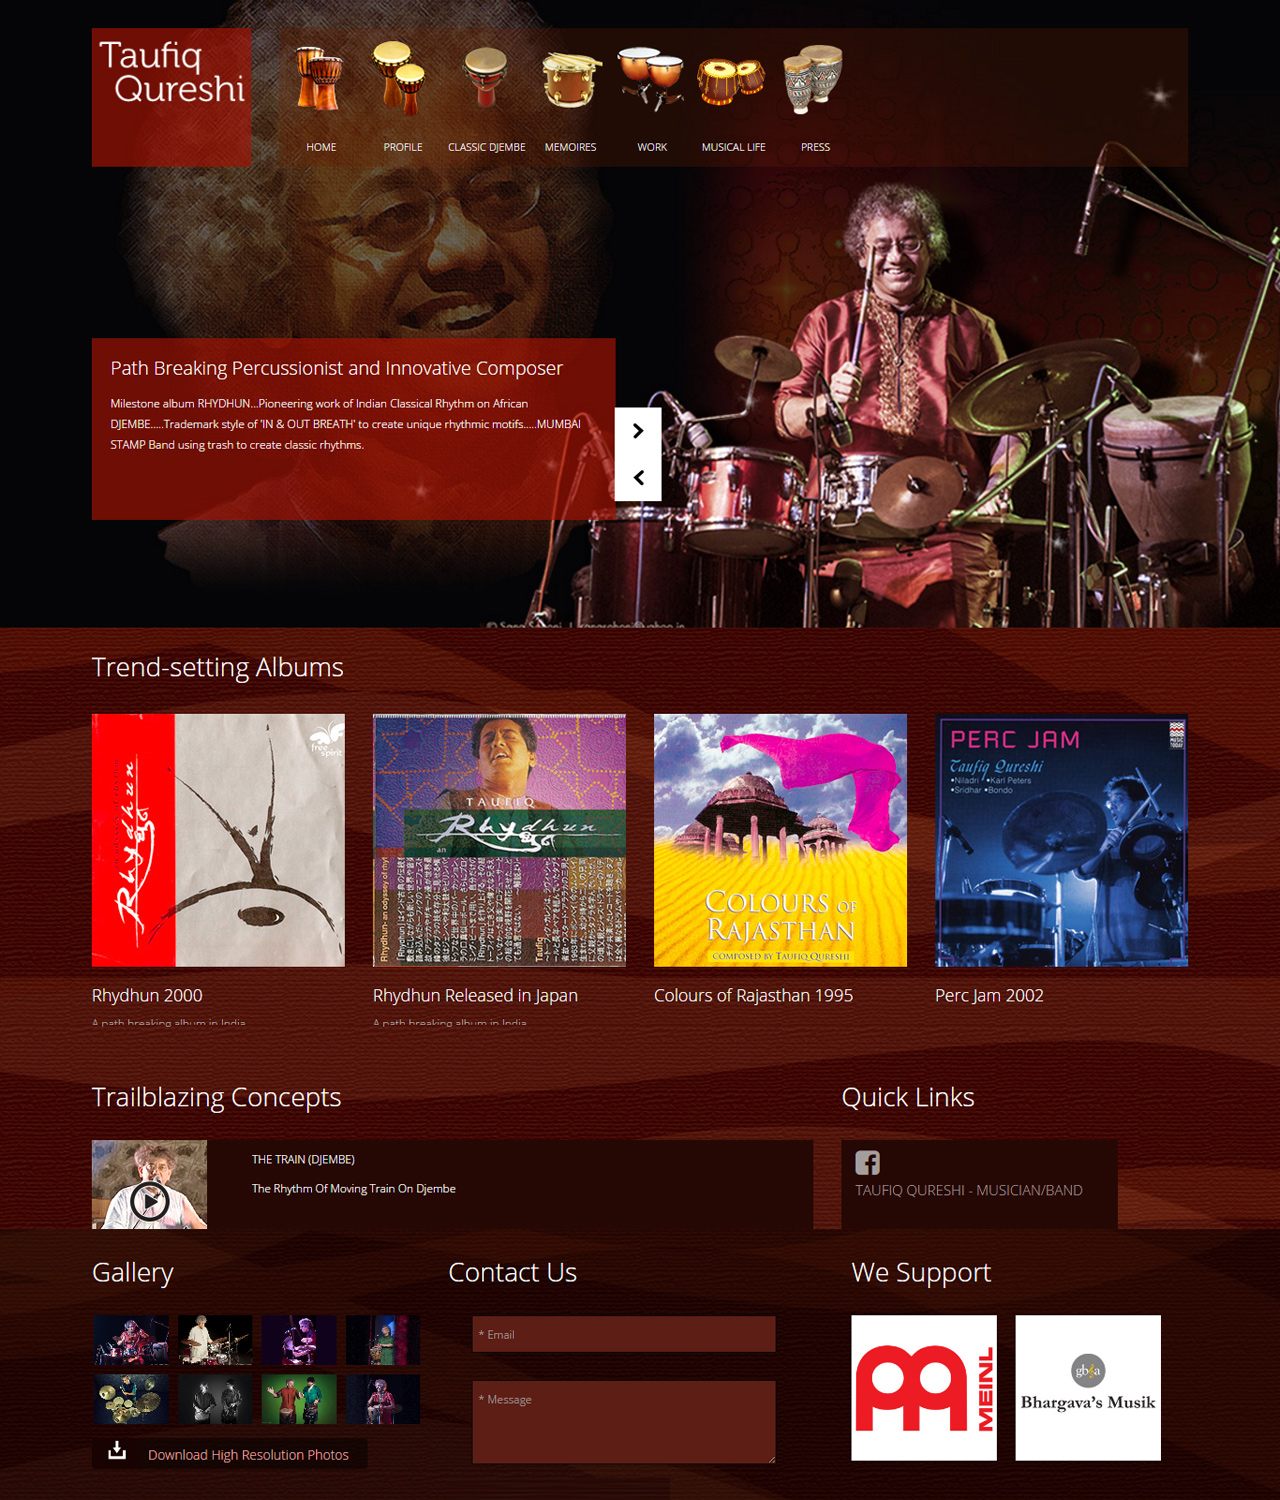 Website Design for World Renowned Musician and Percussionist - Taufiq Qureshi